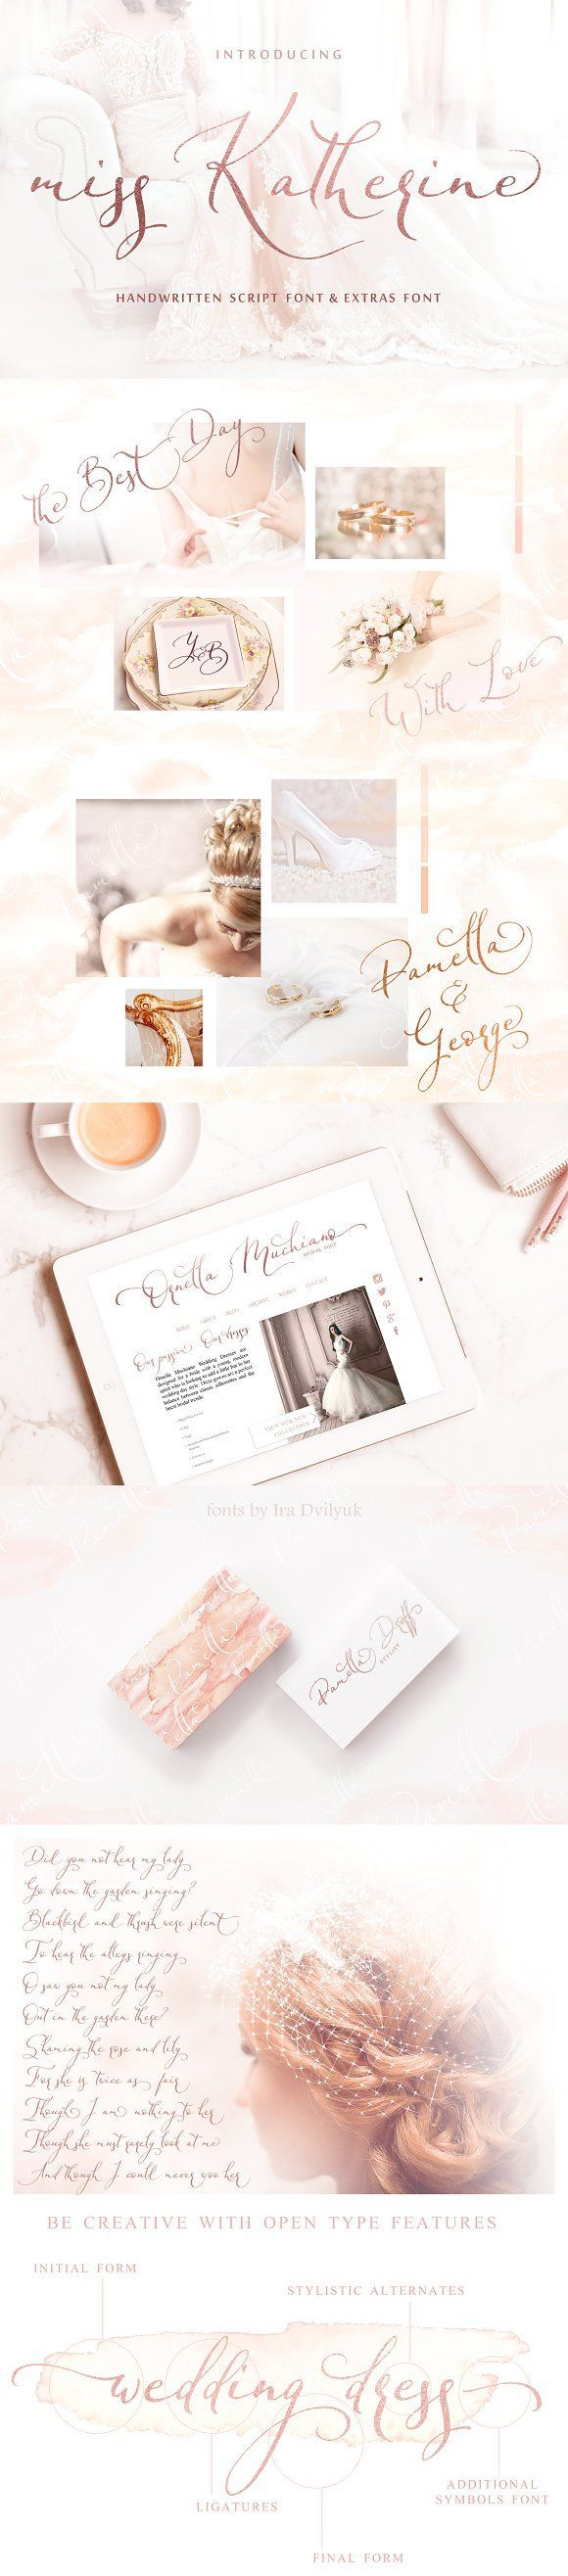 hight resolution of a gorgeous free collection available now on creative market miss katherine font extras